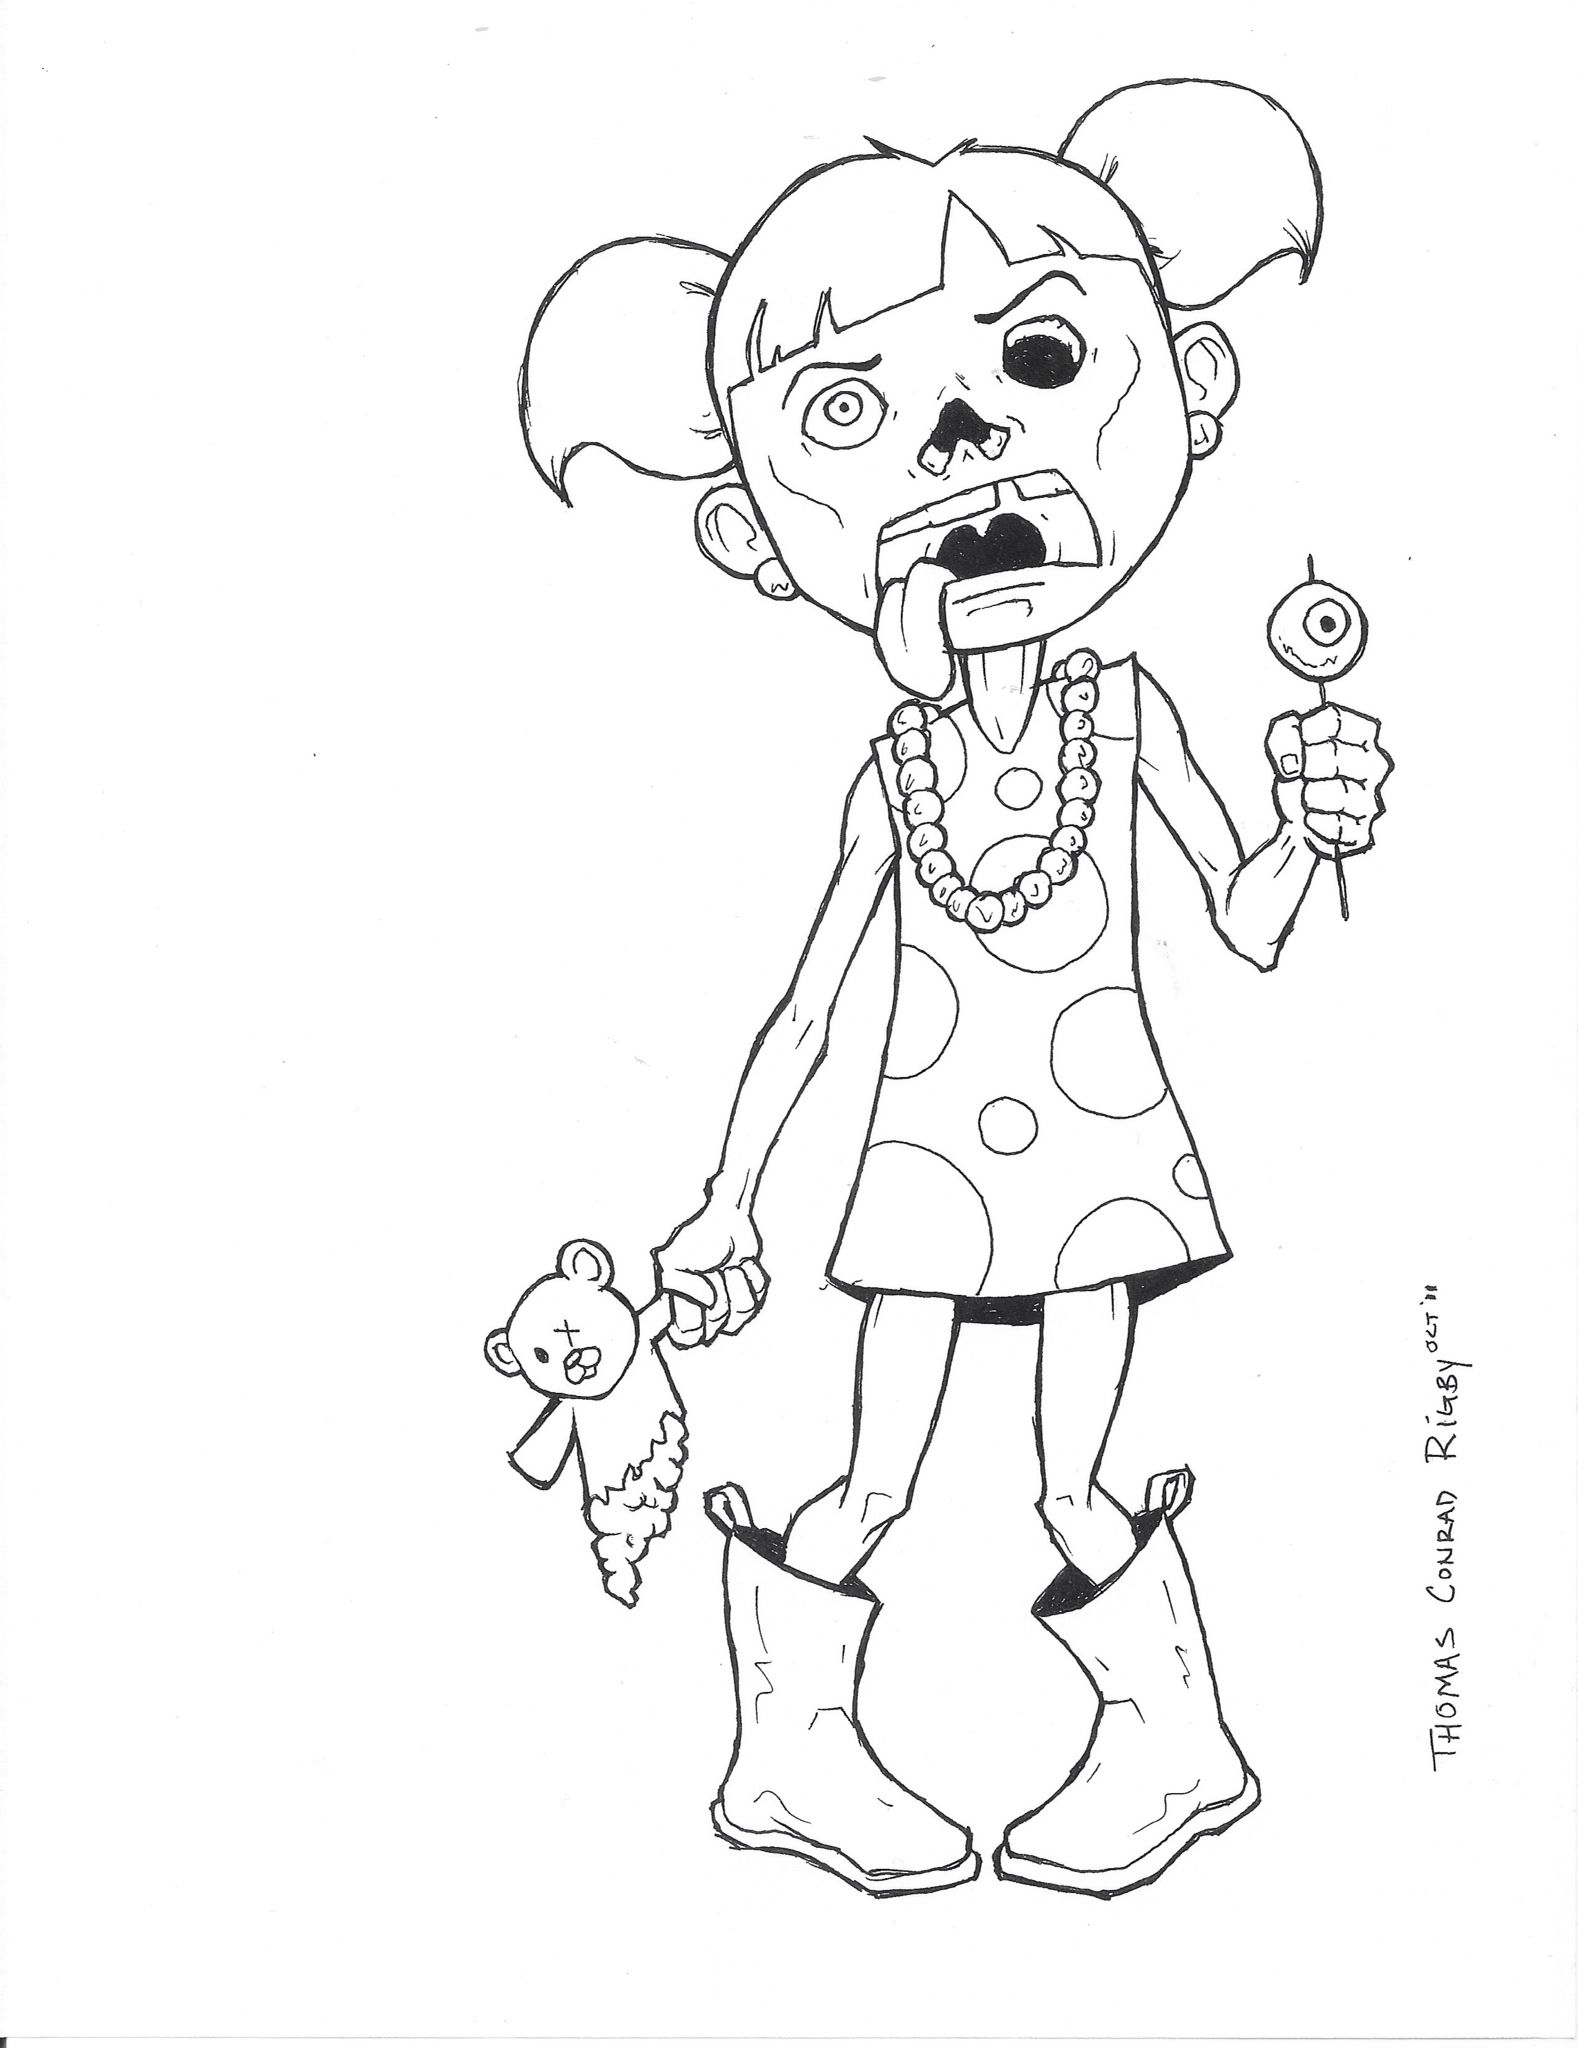 disney channel zombies coloring pages minecraft coloring pages zombies zombies pages disney channel coloring